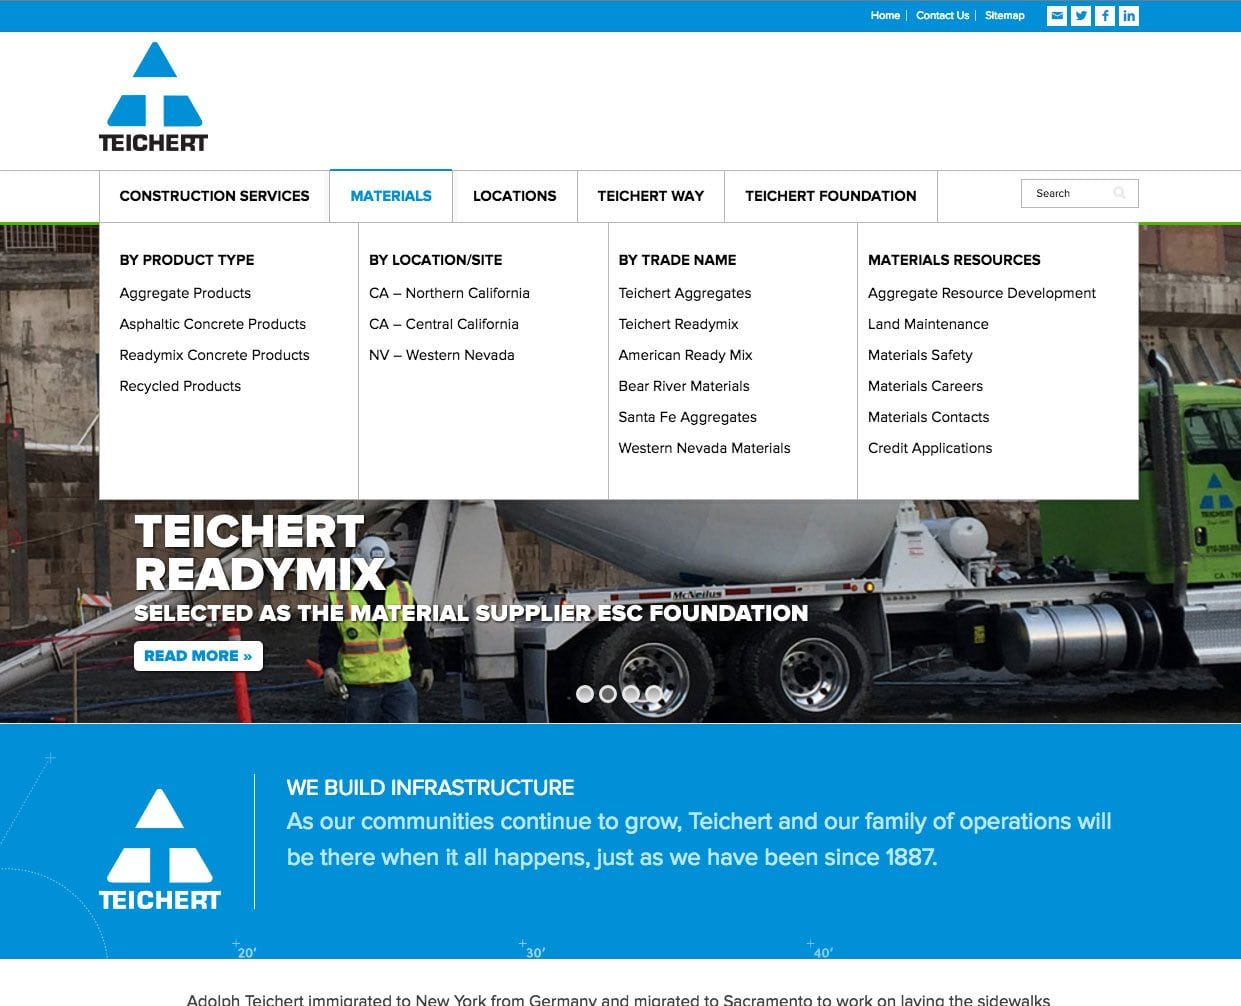 A screenshot of the mega menu on the Teichert Construction website we built